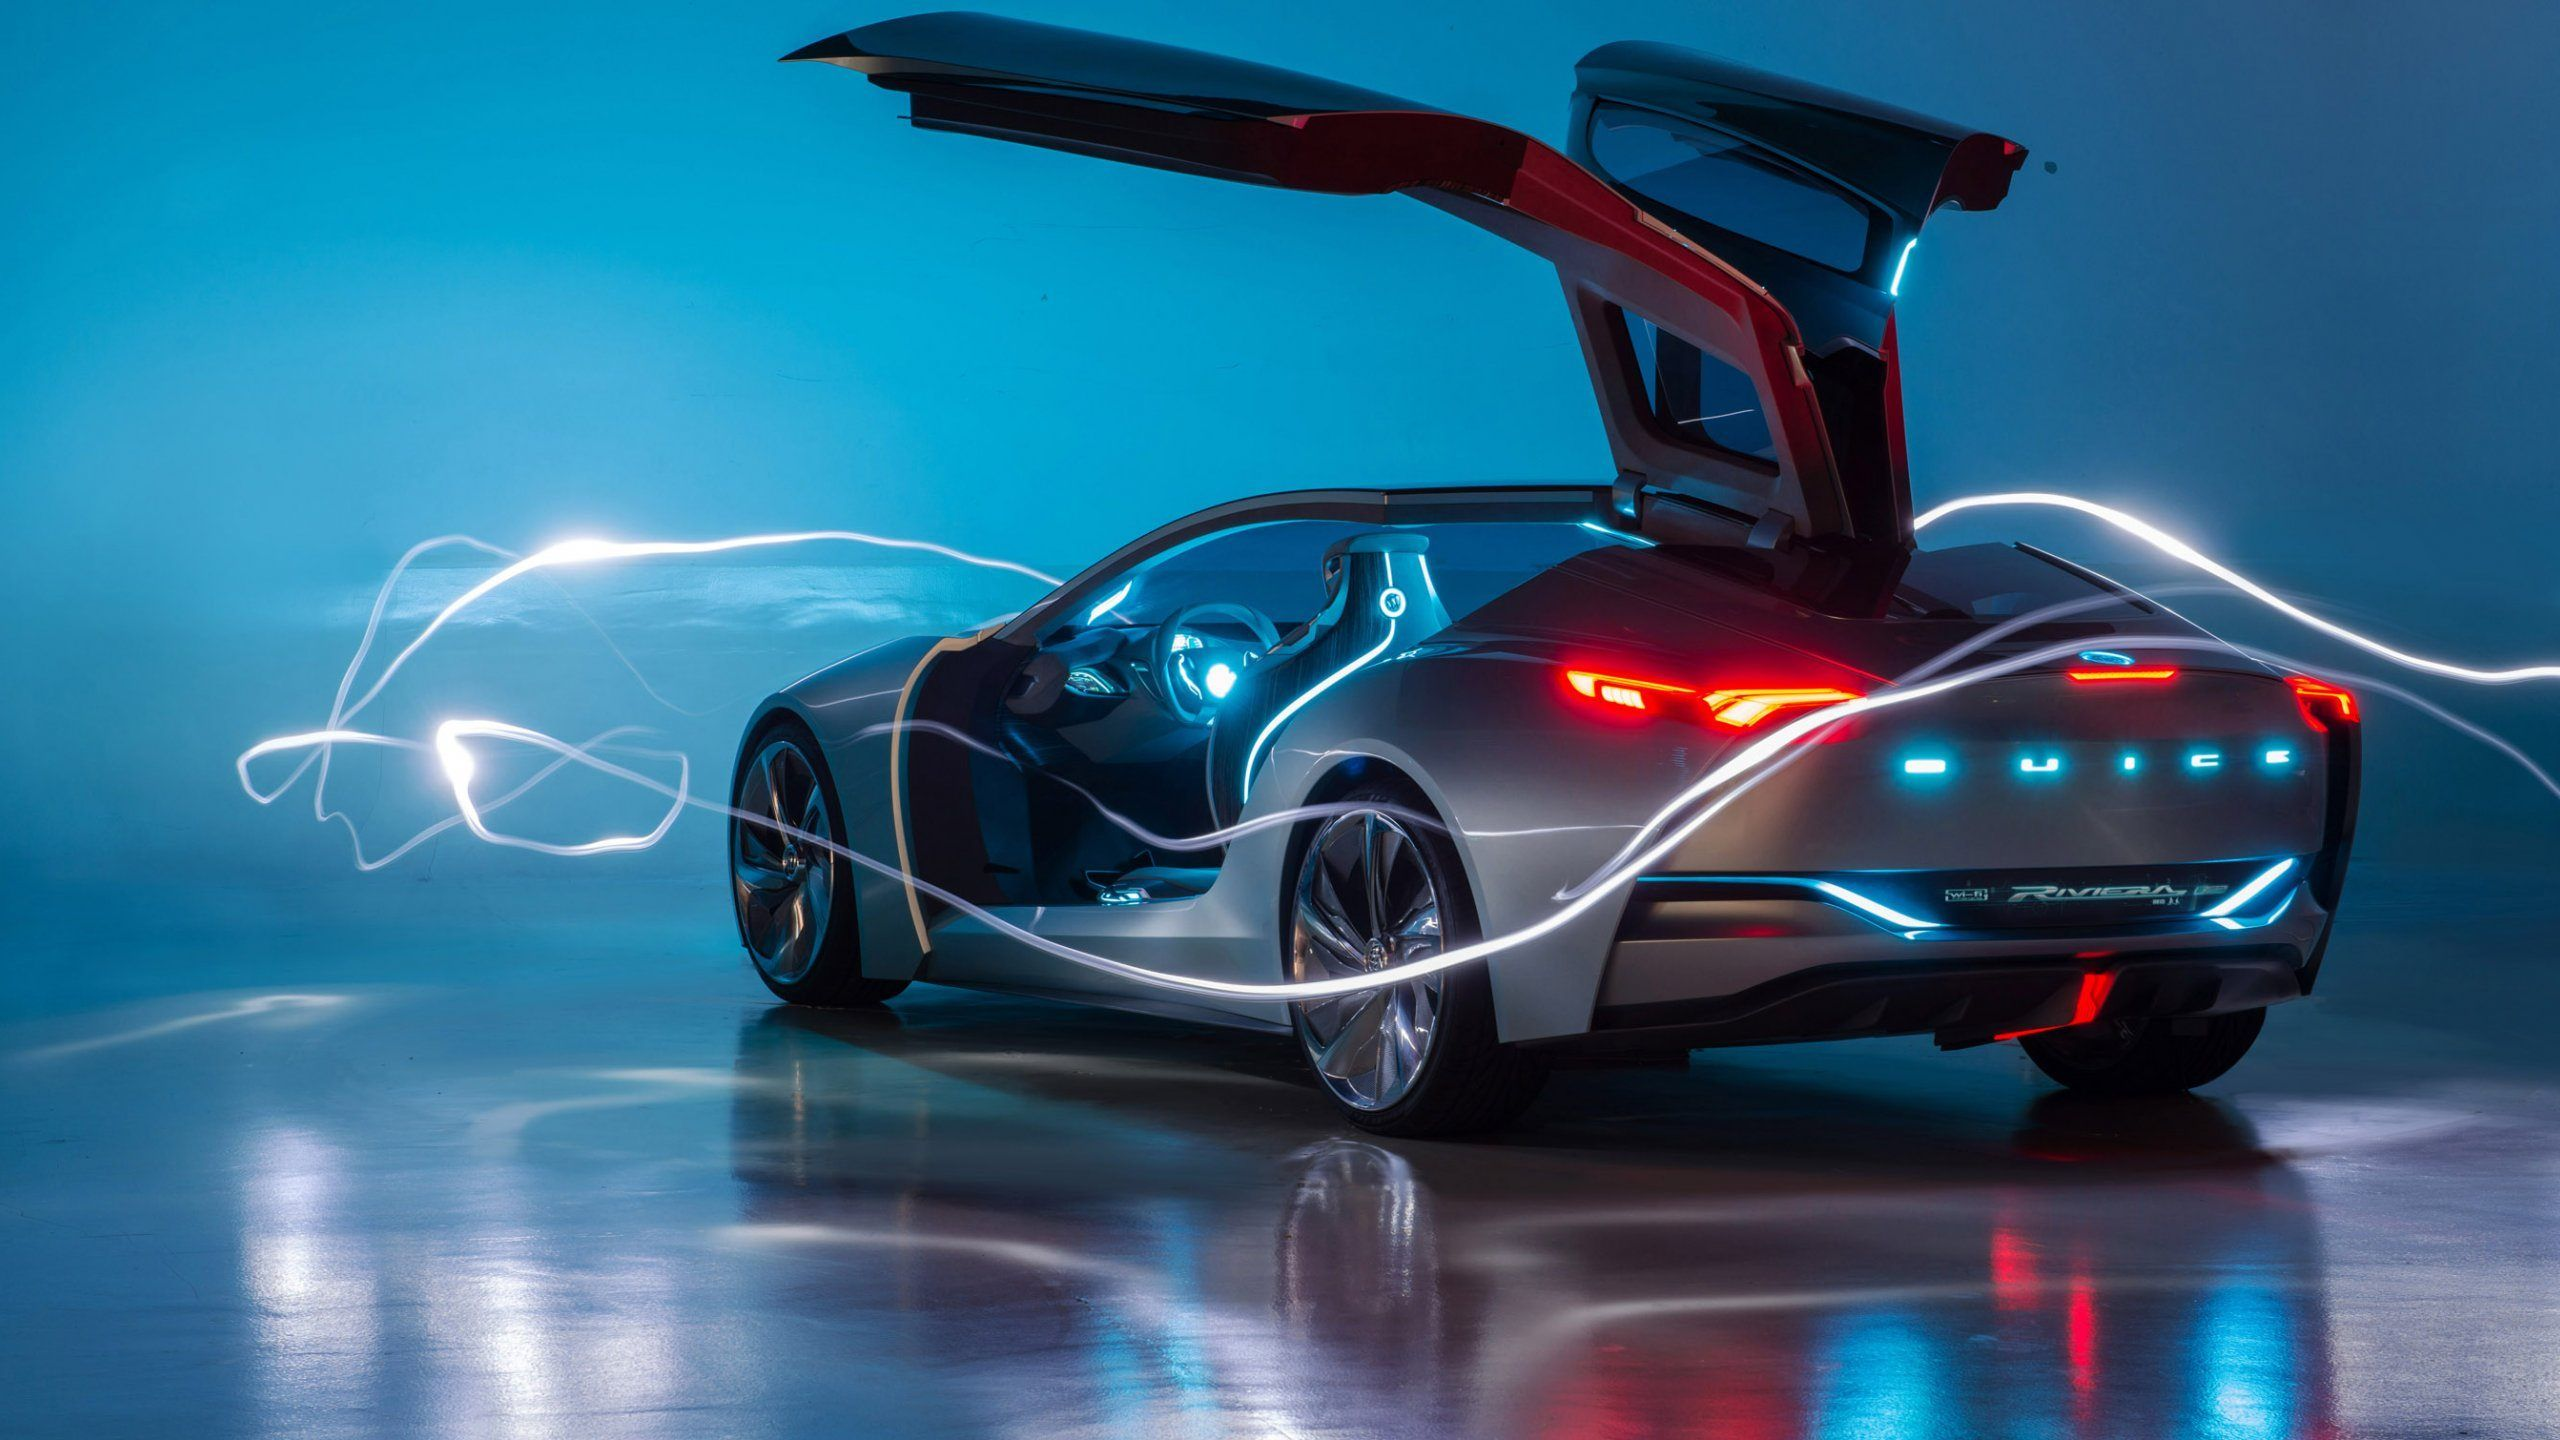 76 Best Free Concept Cars Wallpapers